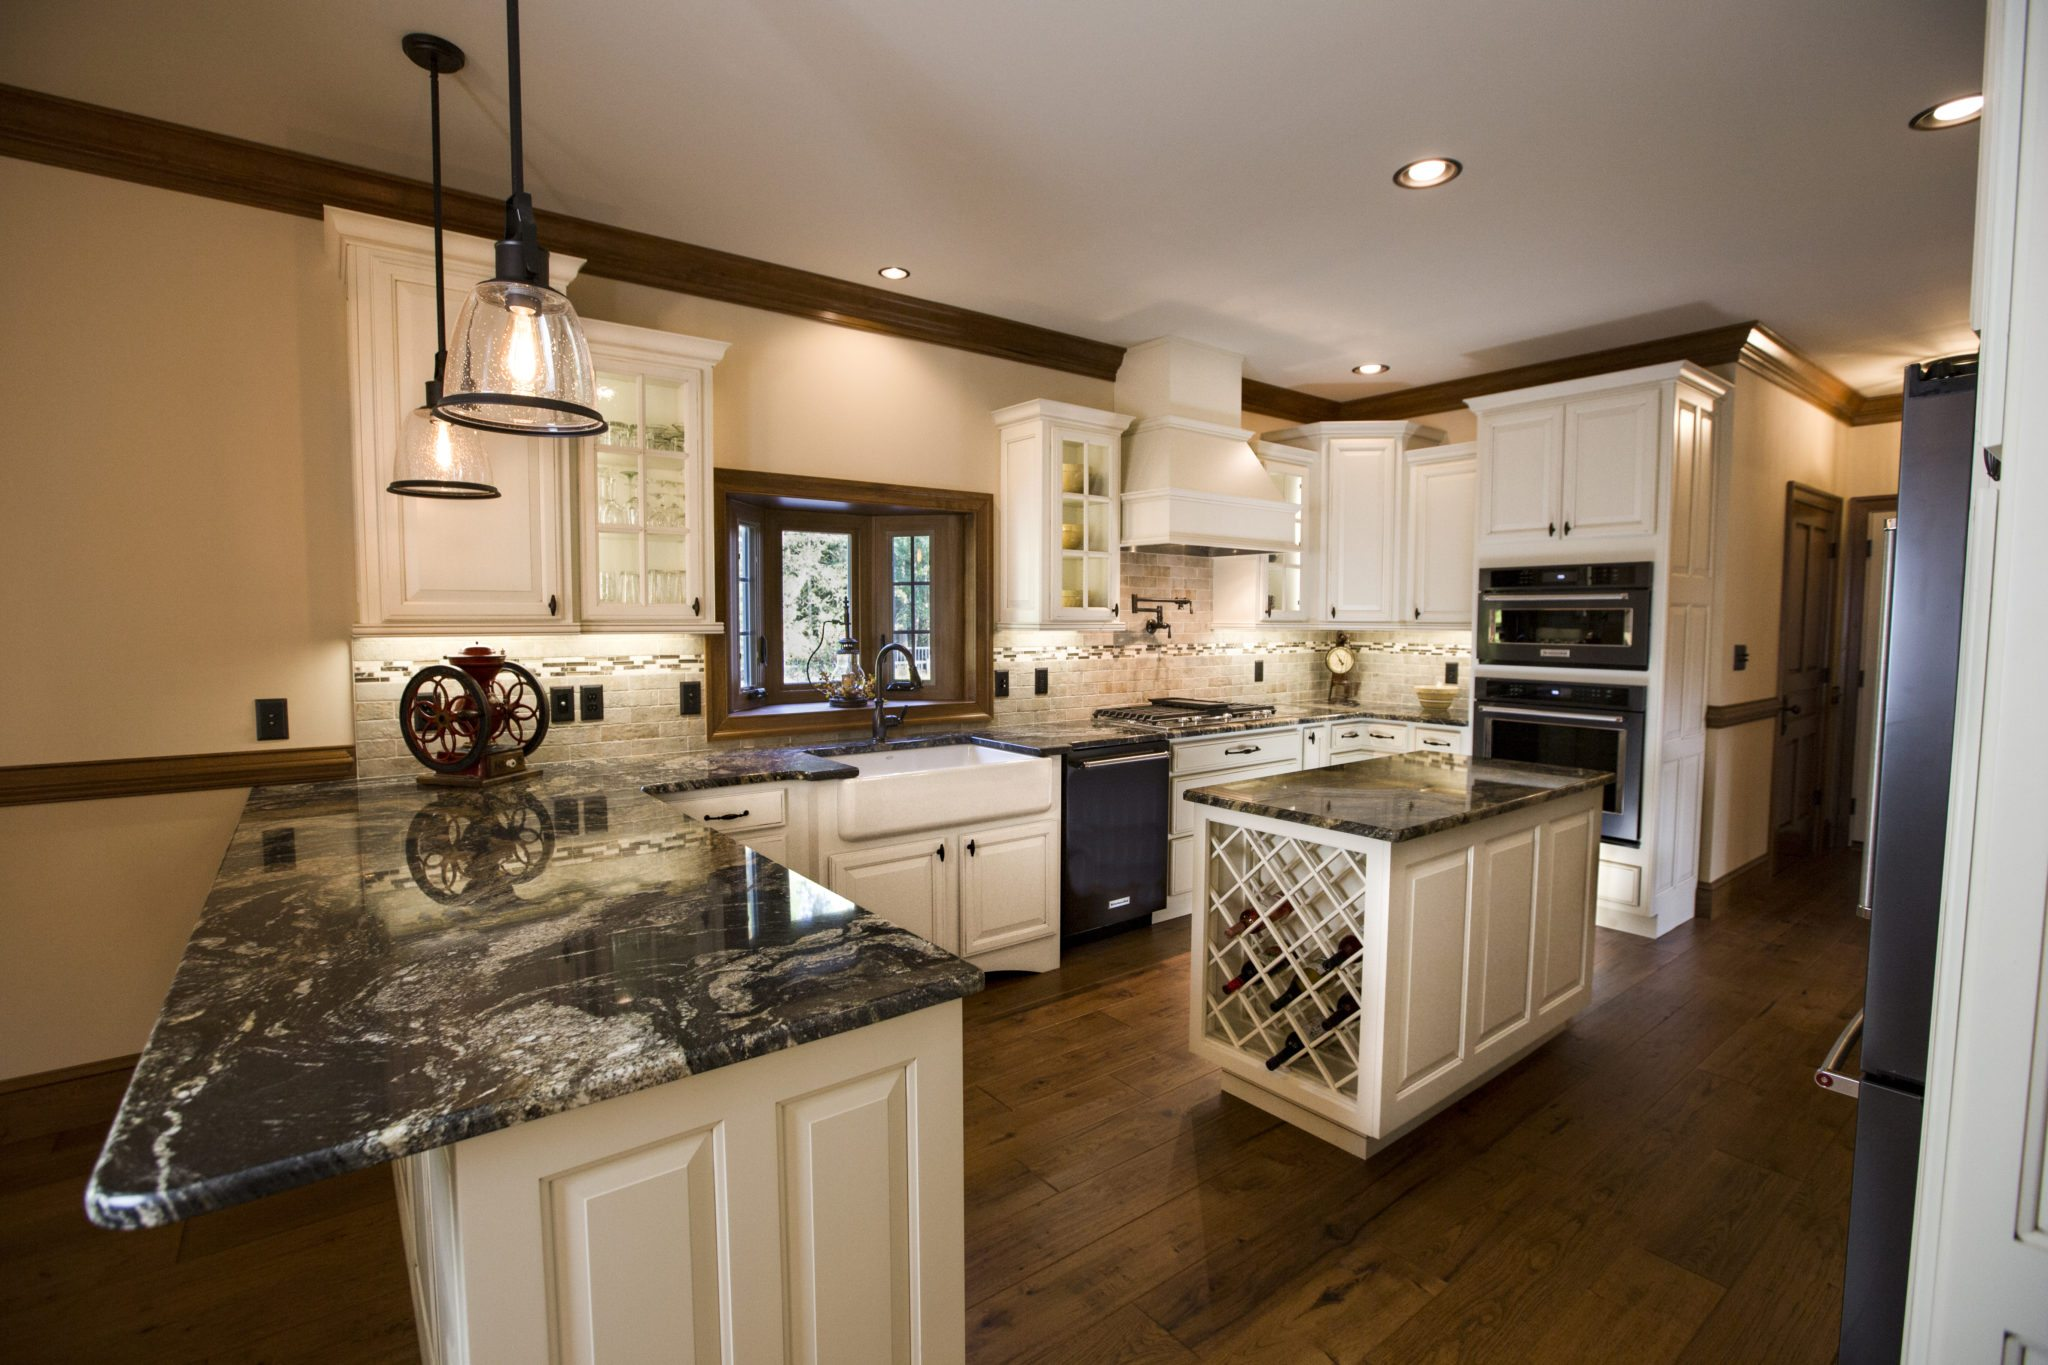 Selinsgrove mansfield custom builder brookside homes bentley drive malvernweather Images